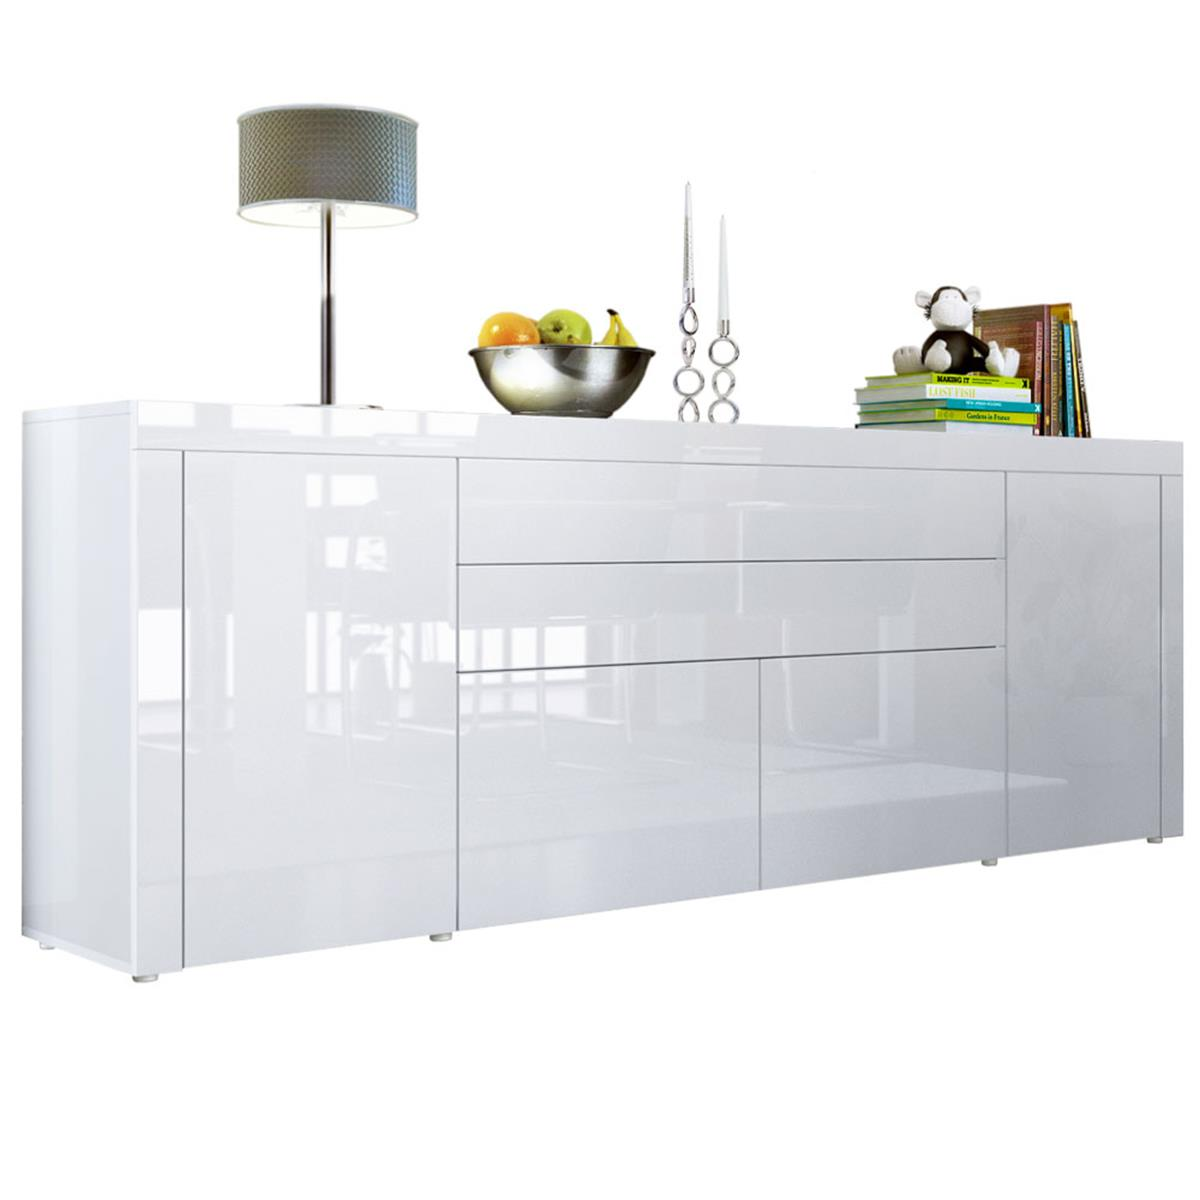 chest of drawers white high gloss la paz v2 mit. Black Bedroom Furniture Sets. Home Design Ideas